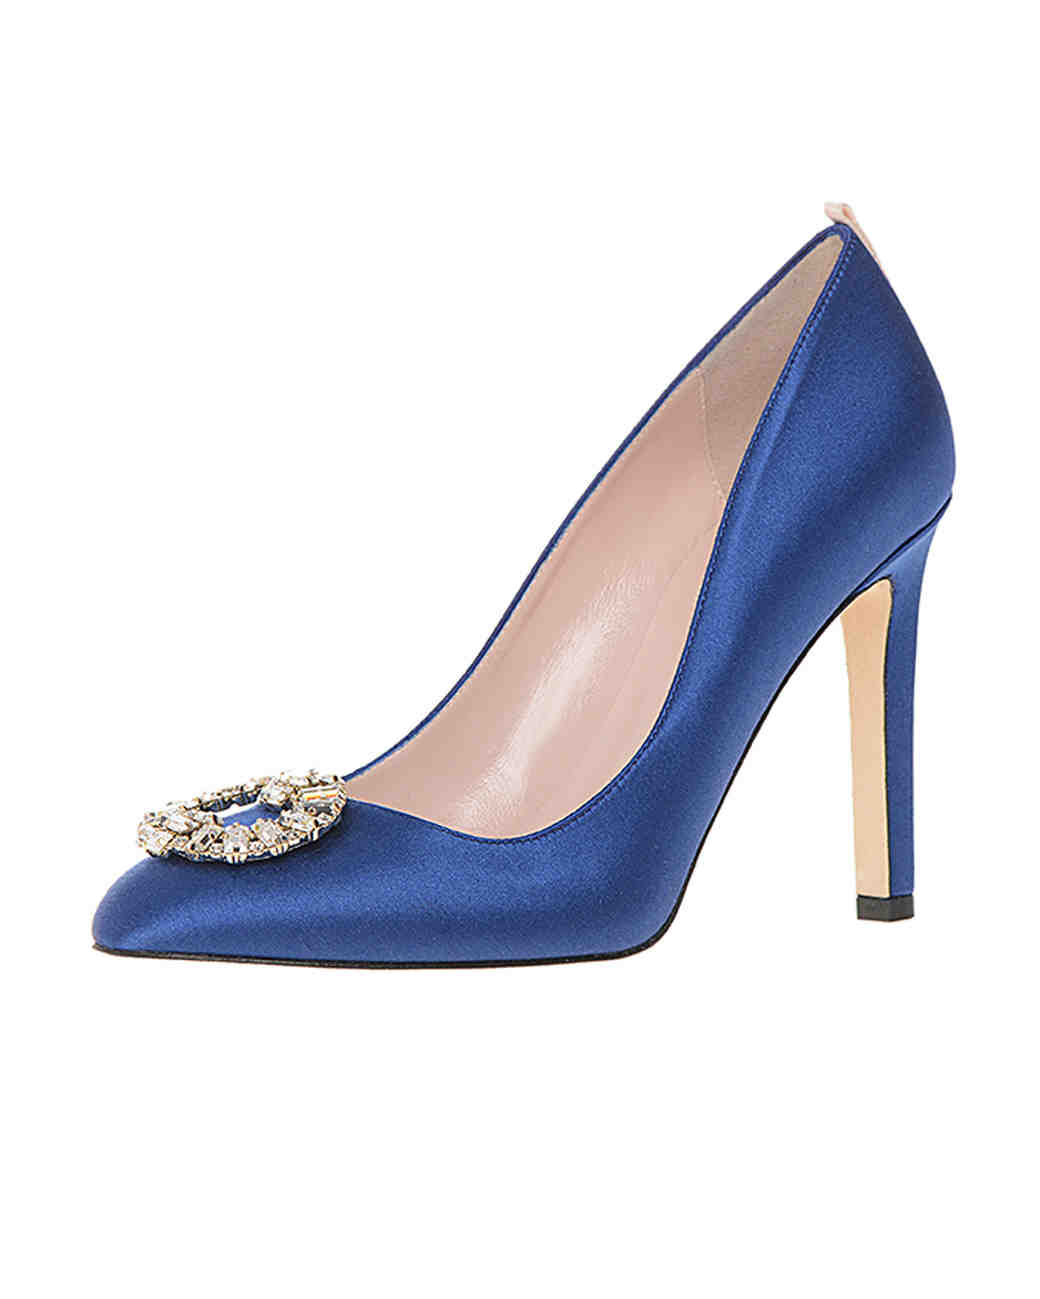 sjp-bridal-shoes-angelica-blue-0515.jpg